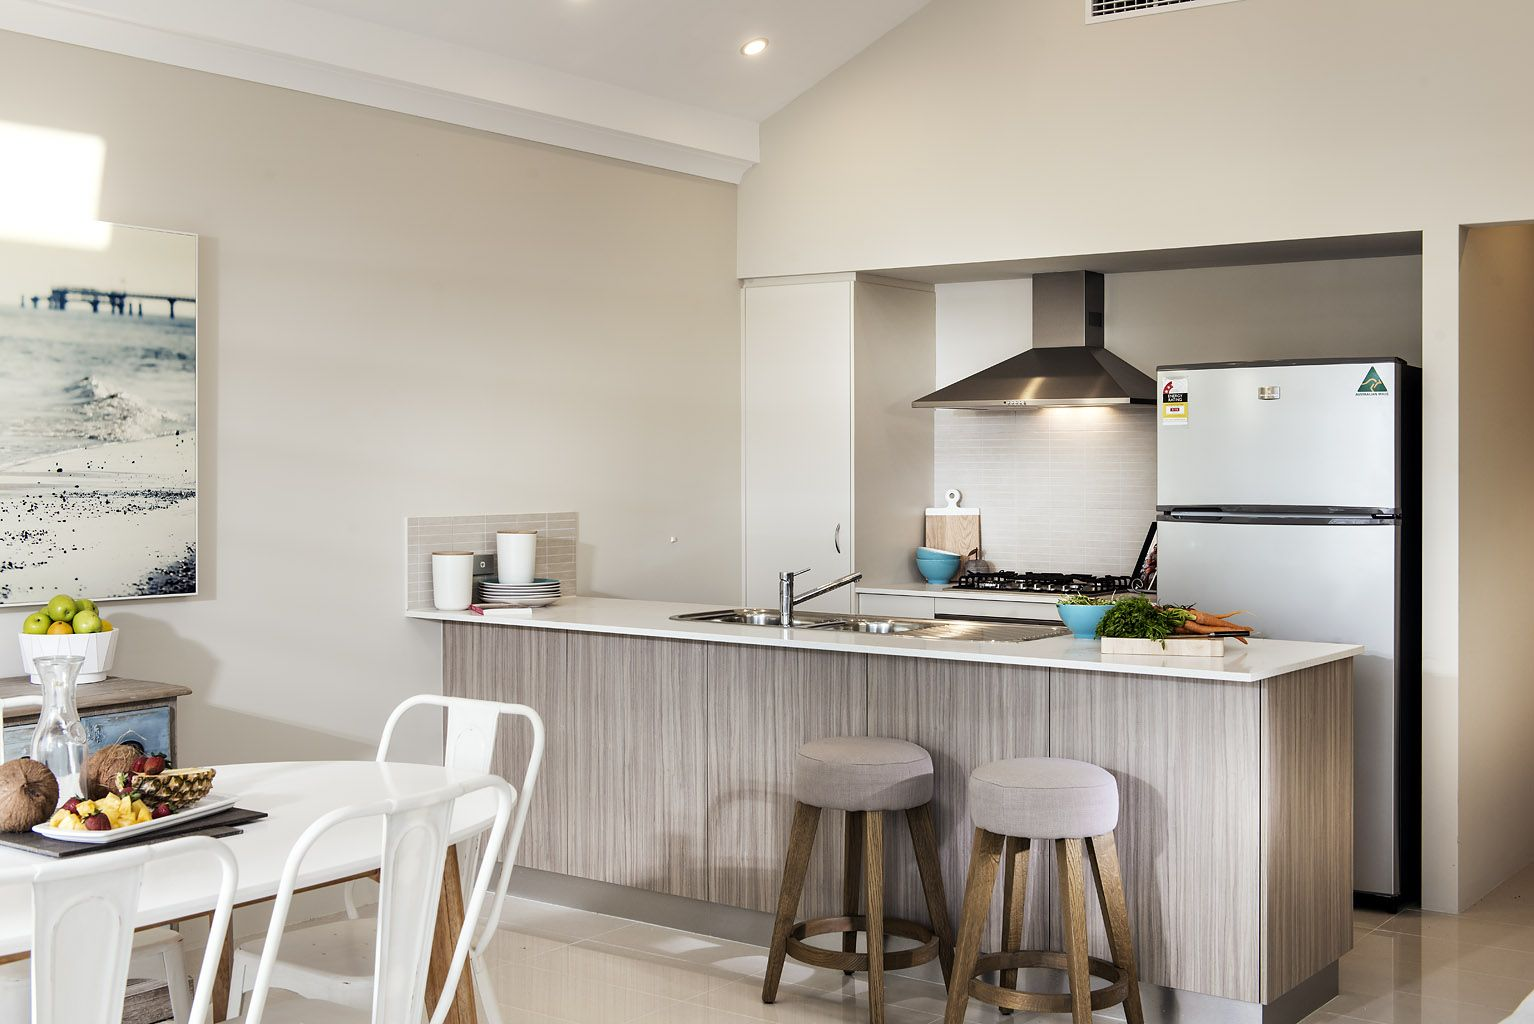 Homebuyers Centre - Flute (Harrisdale) Display Home Kitchen | Own ...